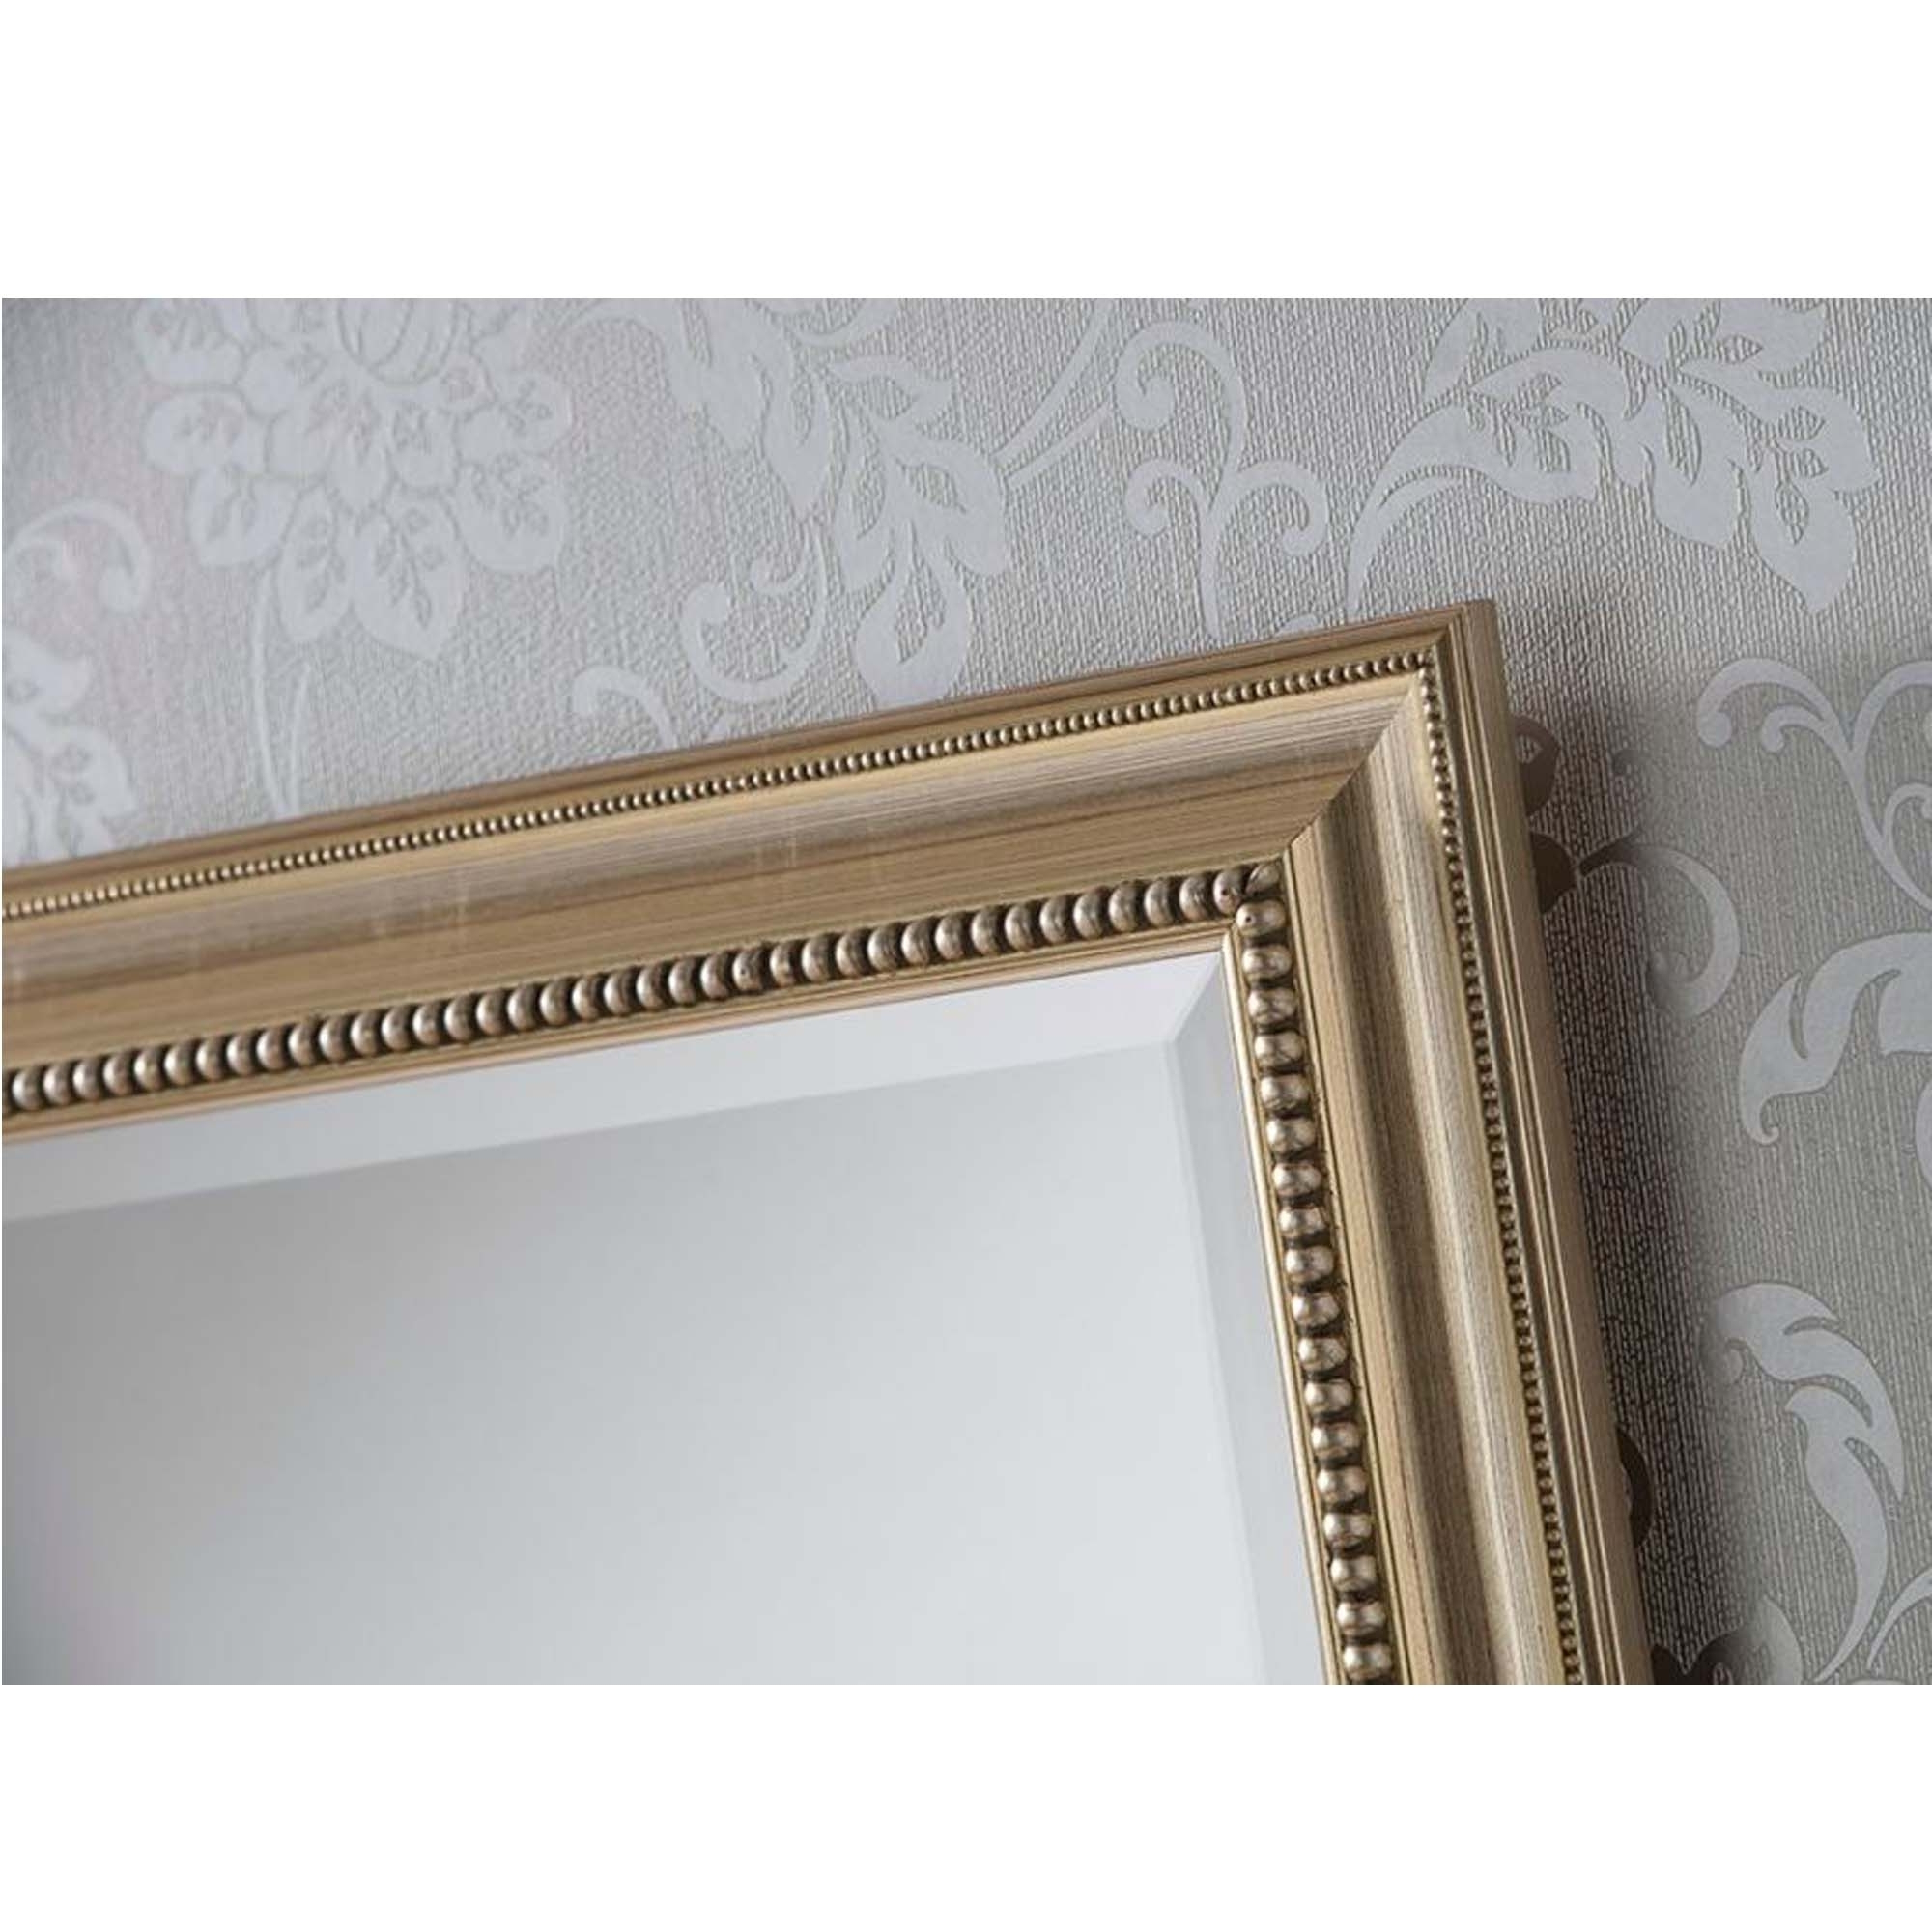 Widely Used Ornate Silver Beaded Rectangular Wall Mirror Regarding Silver Beaded Wall Mirrors (Gallery 14 of 20)